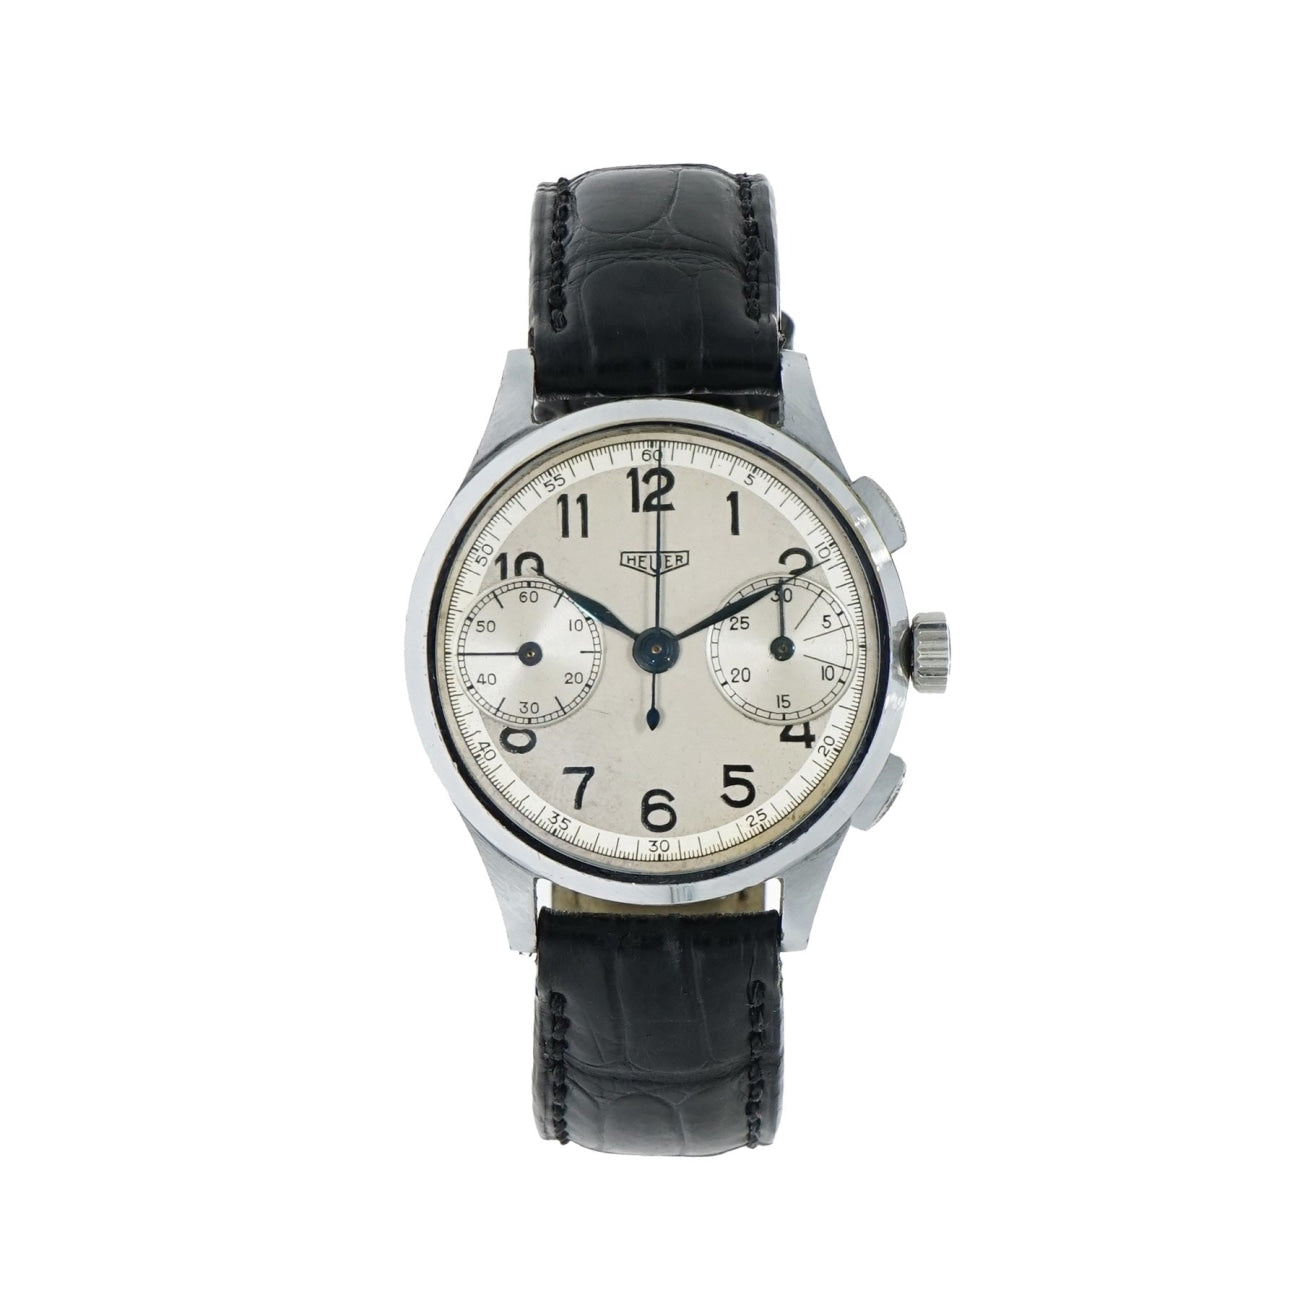 Pre-Owned Heuer Watches - Chronograph | Manfredi Jewels